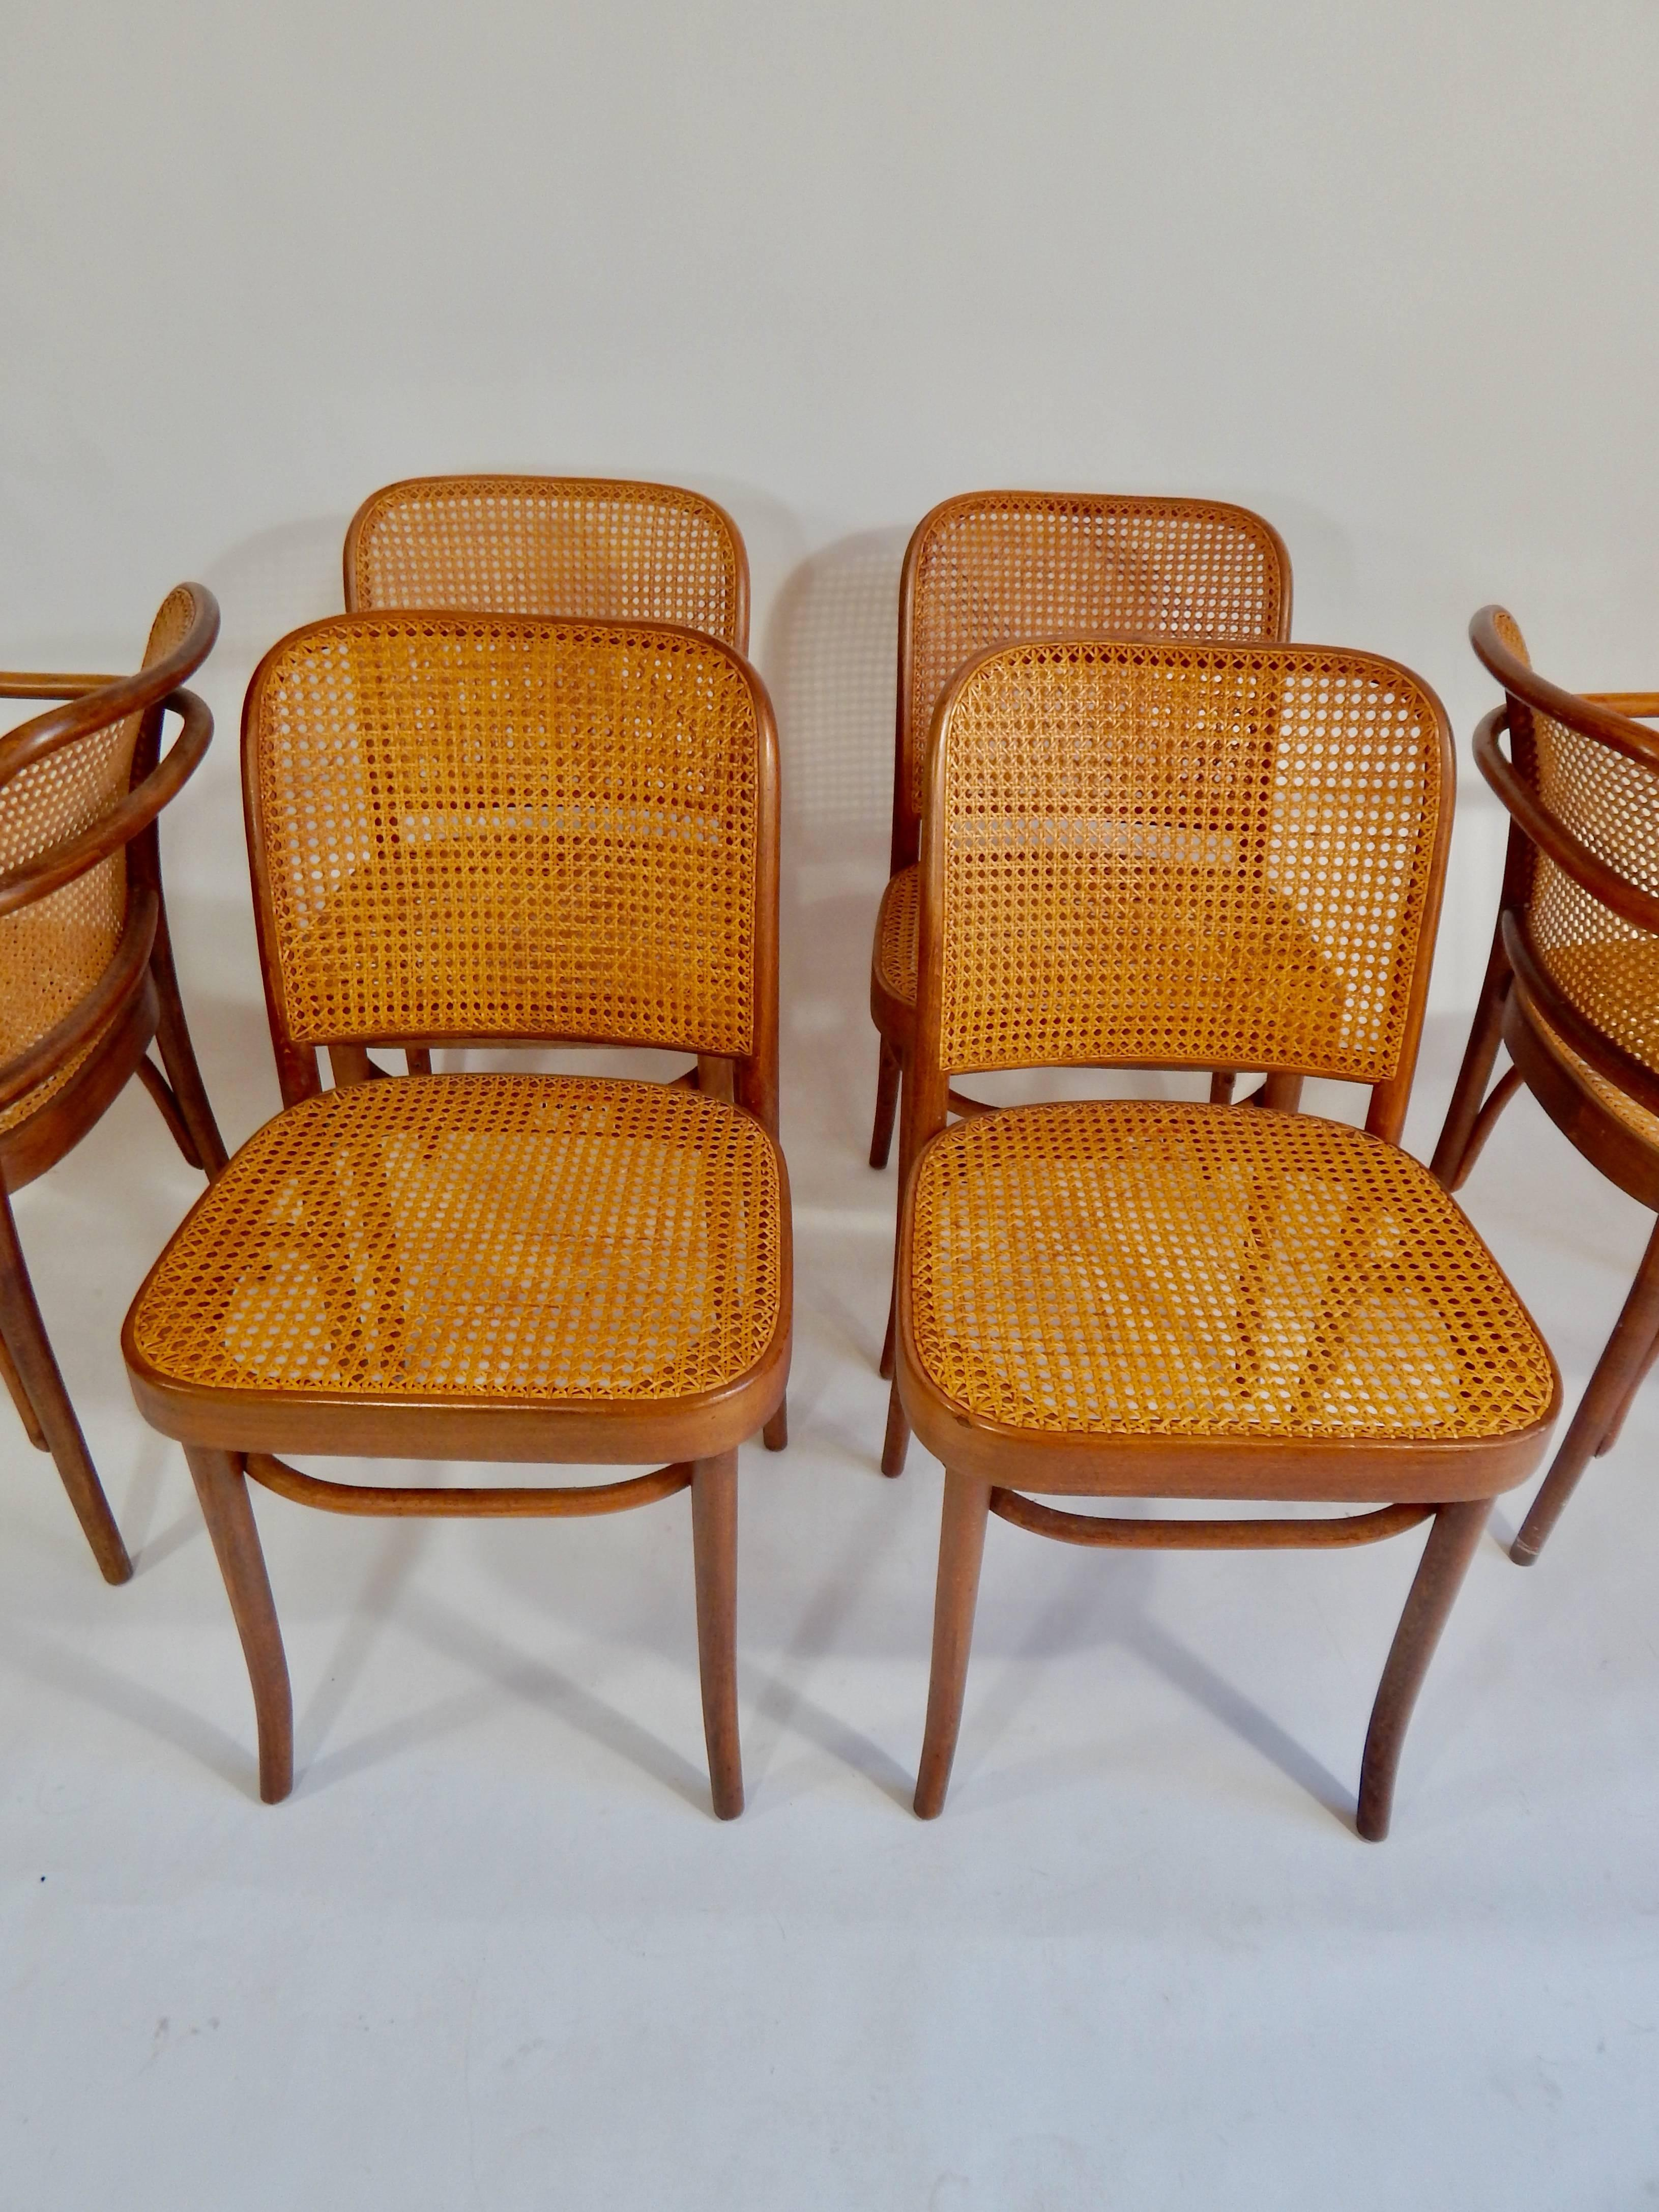 The Original 1920s Version Of These Josef Hoffman For Thonet Designed Chairs.  Four Side Chairs